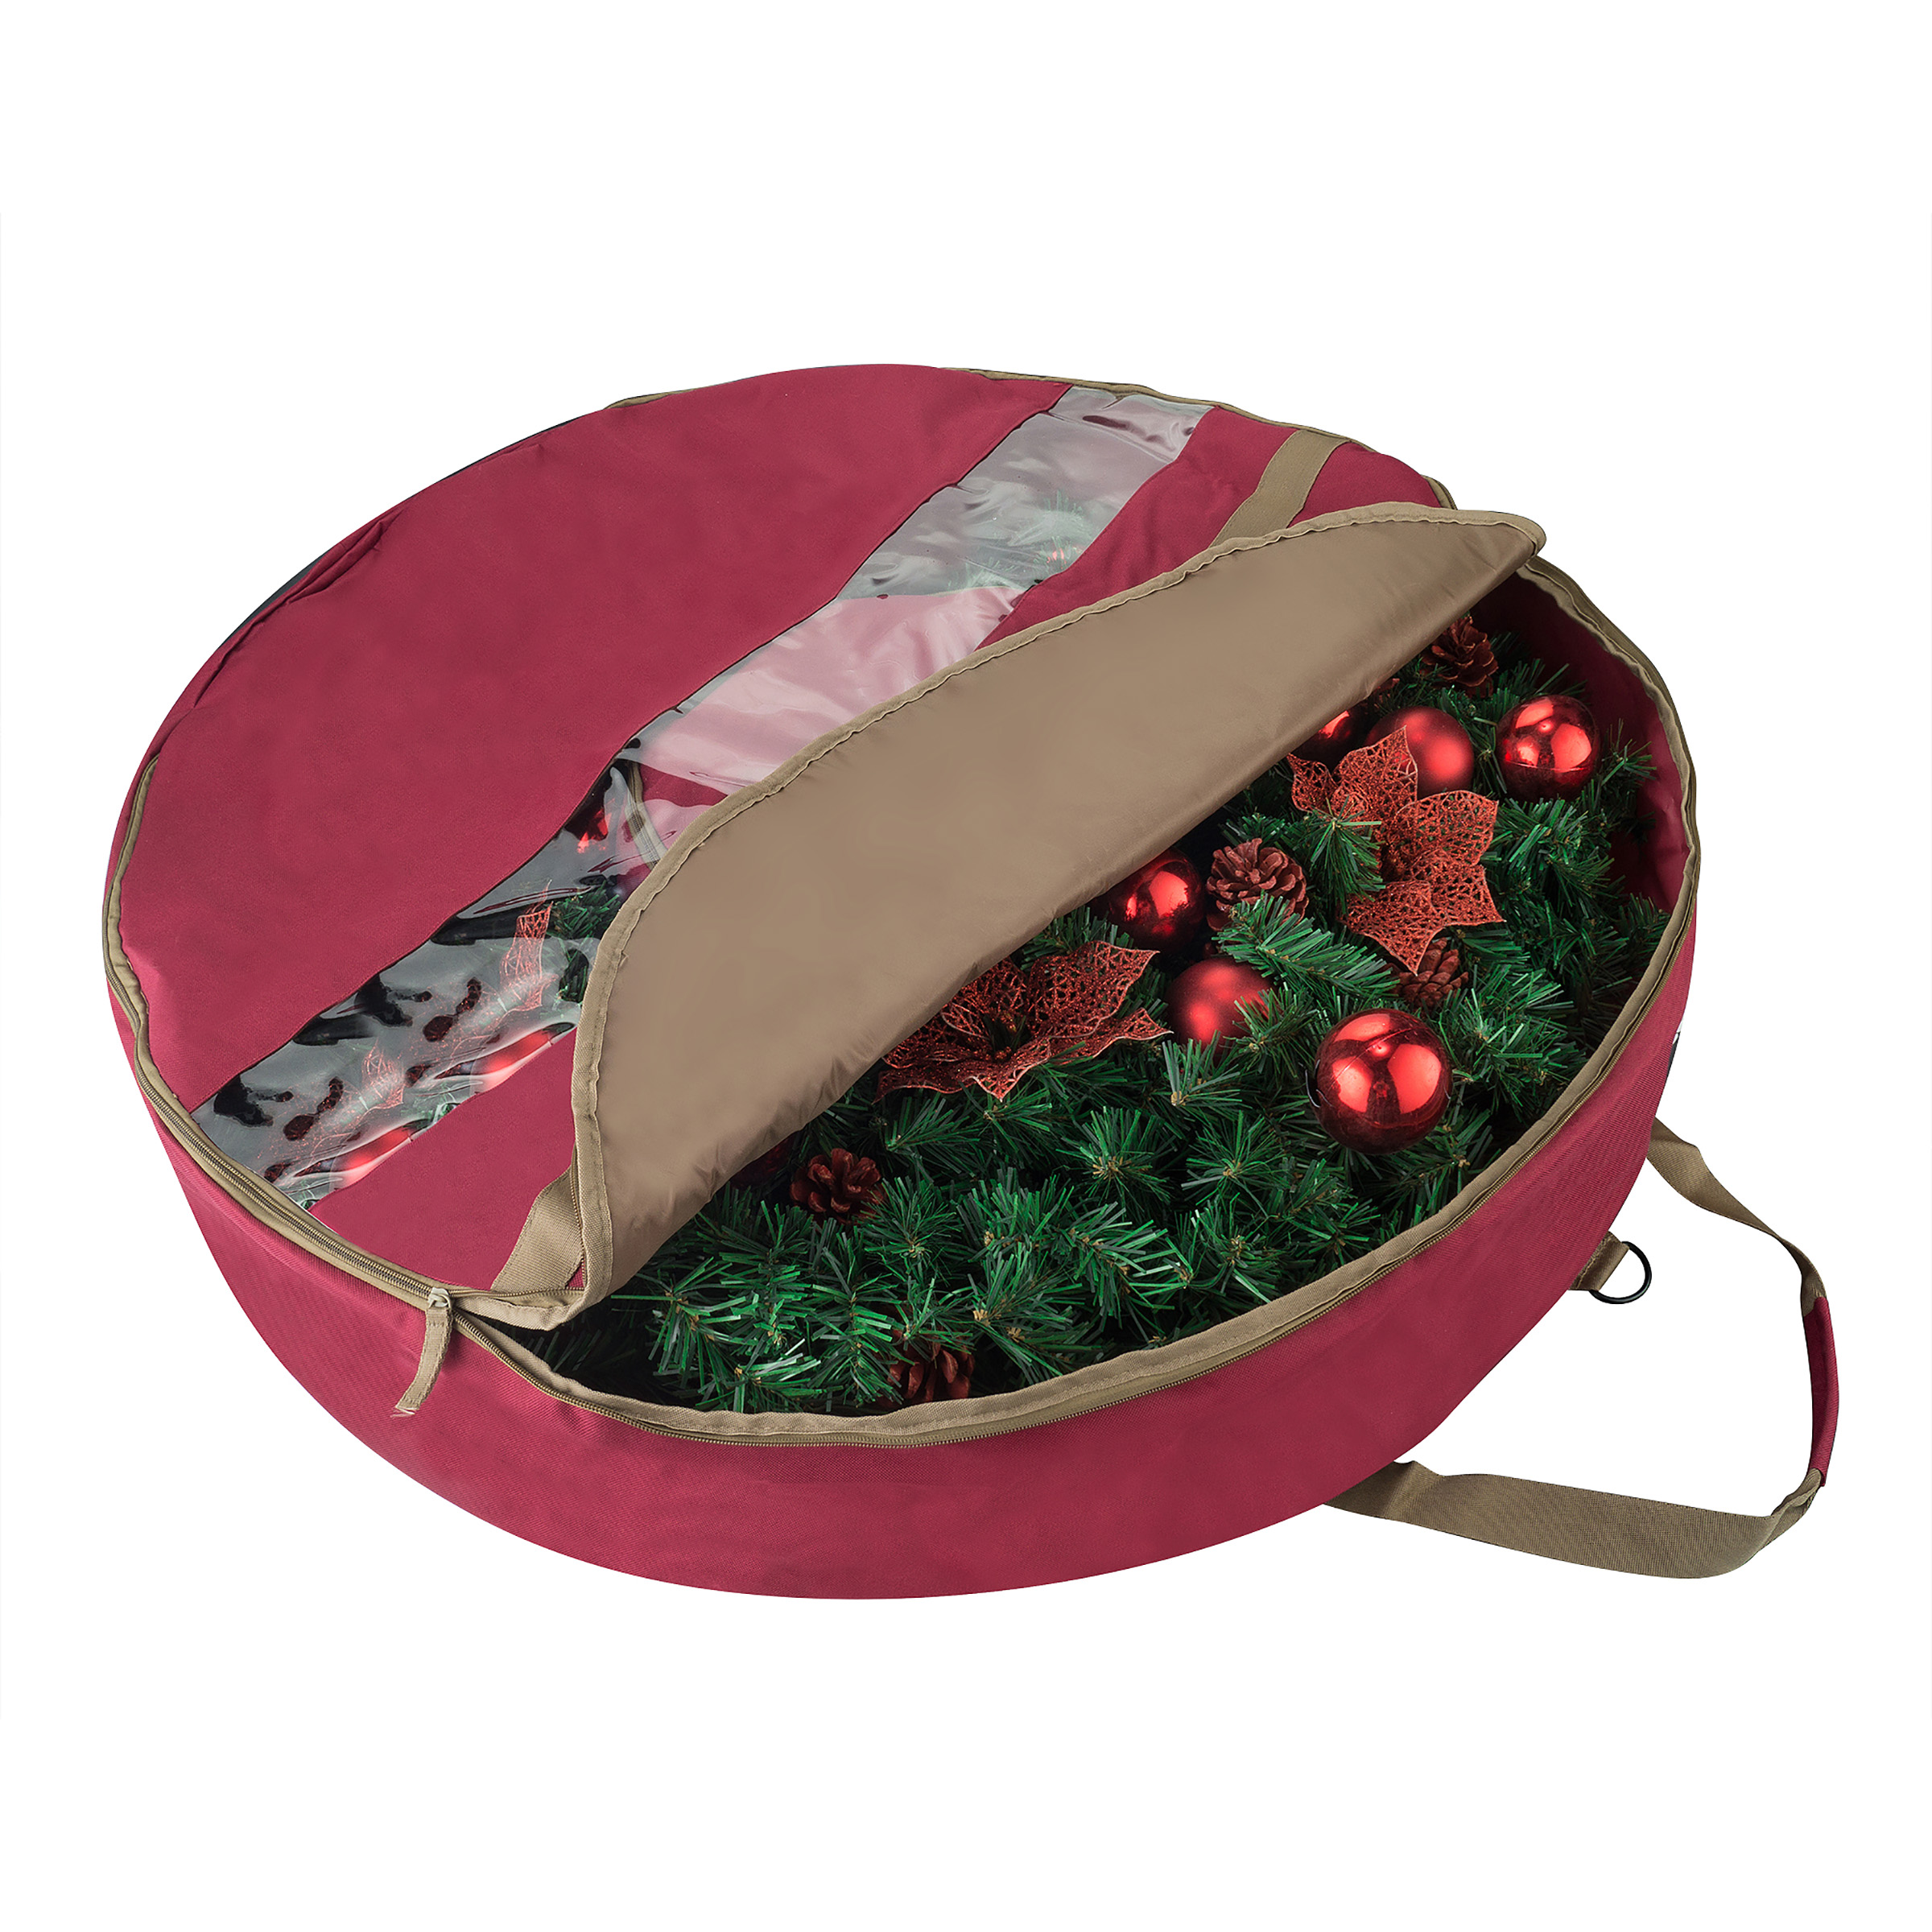 "Elf Stor Ultimate Red Holiday Christmas Wreath Storage Bag For 30"" Inch Wreaths"